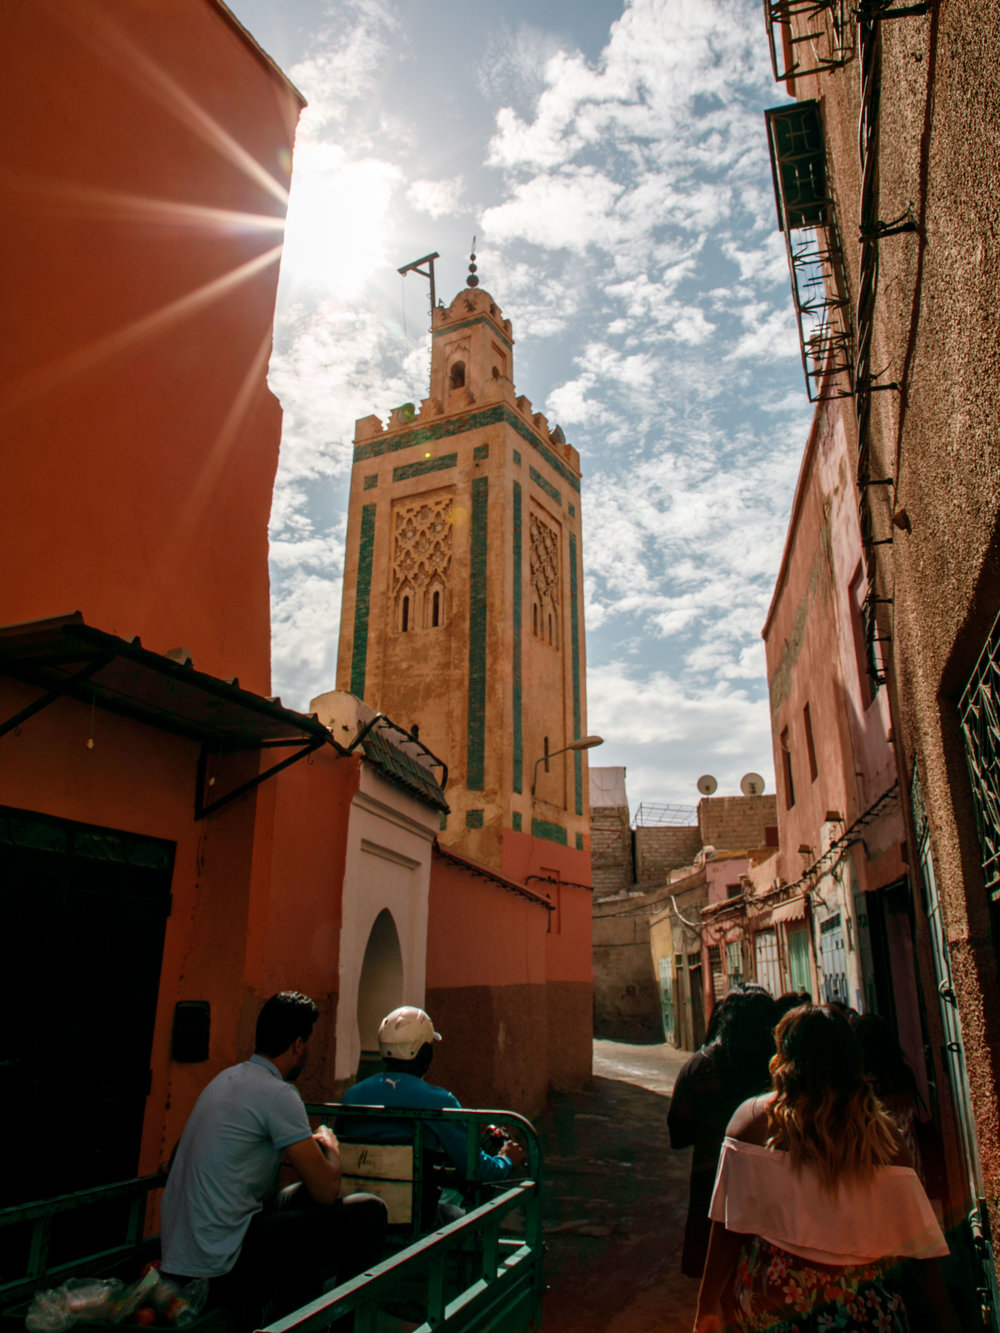 Marrakech-City-Scenes-32.jpg